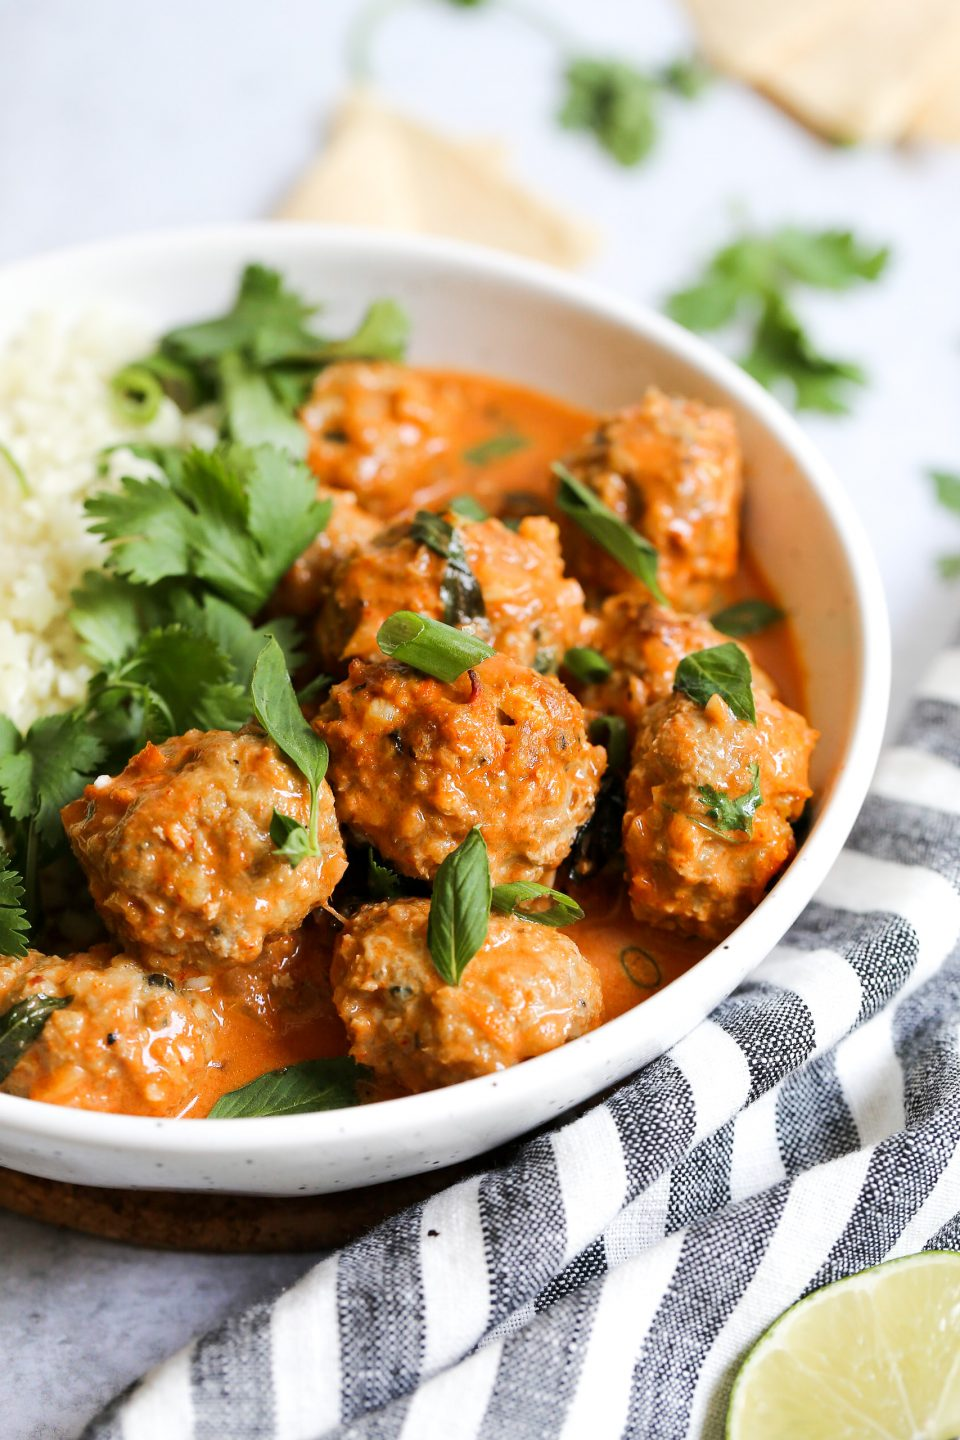 A 90 degree angle of thai coconut curry turkey meatballs placed in a bowl with cauliflower rice and garnished with big leaves of cilantro.